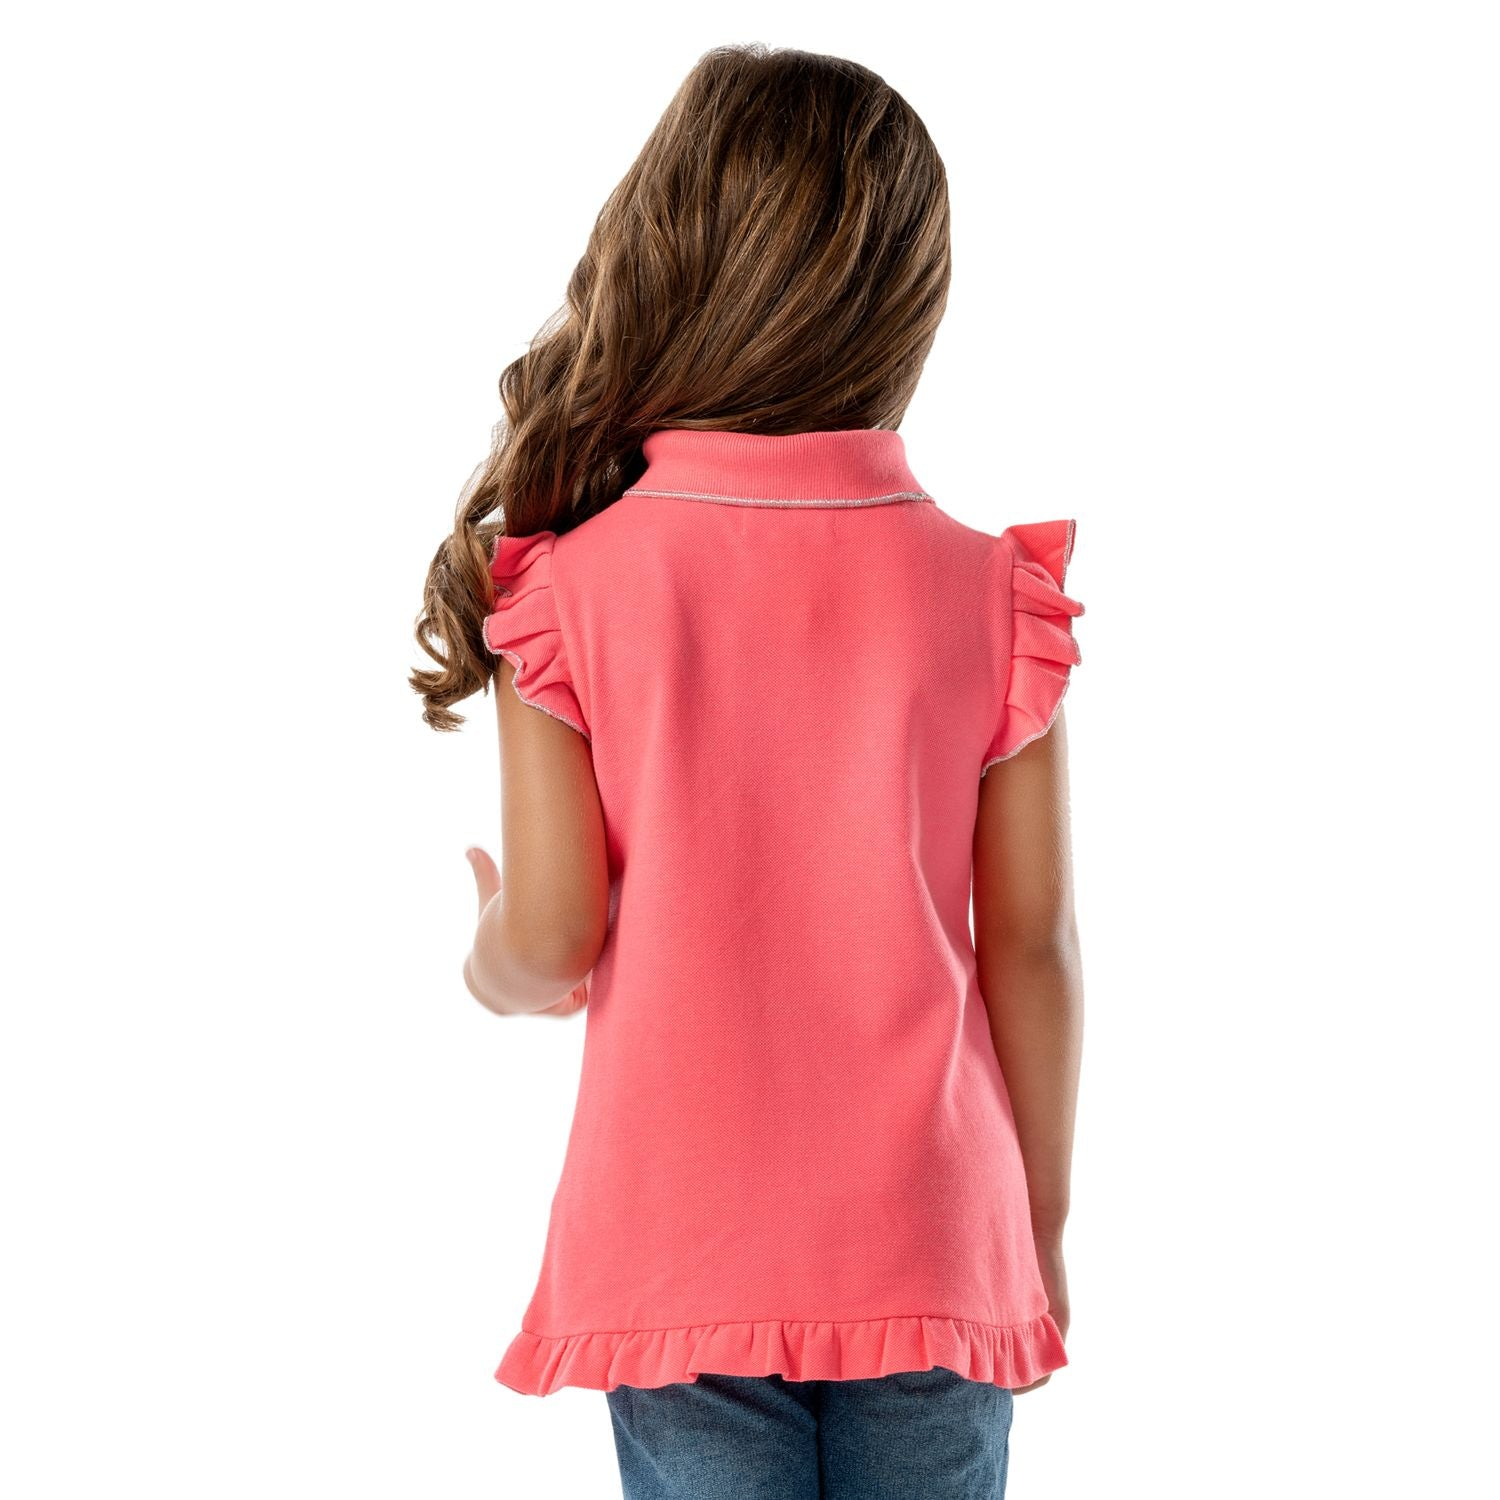 Blushing Top for Girls